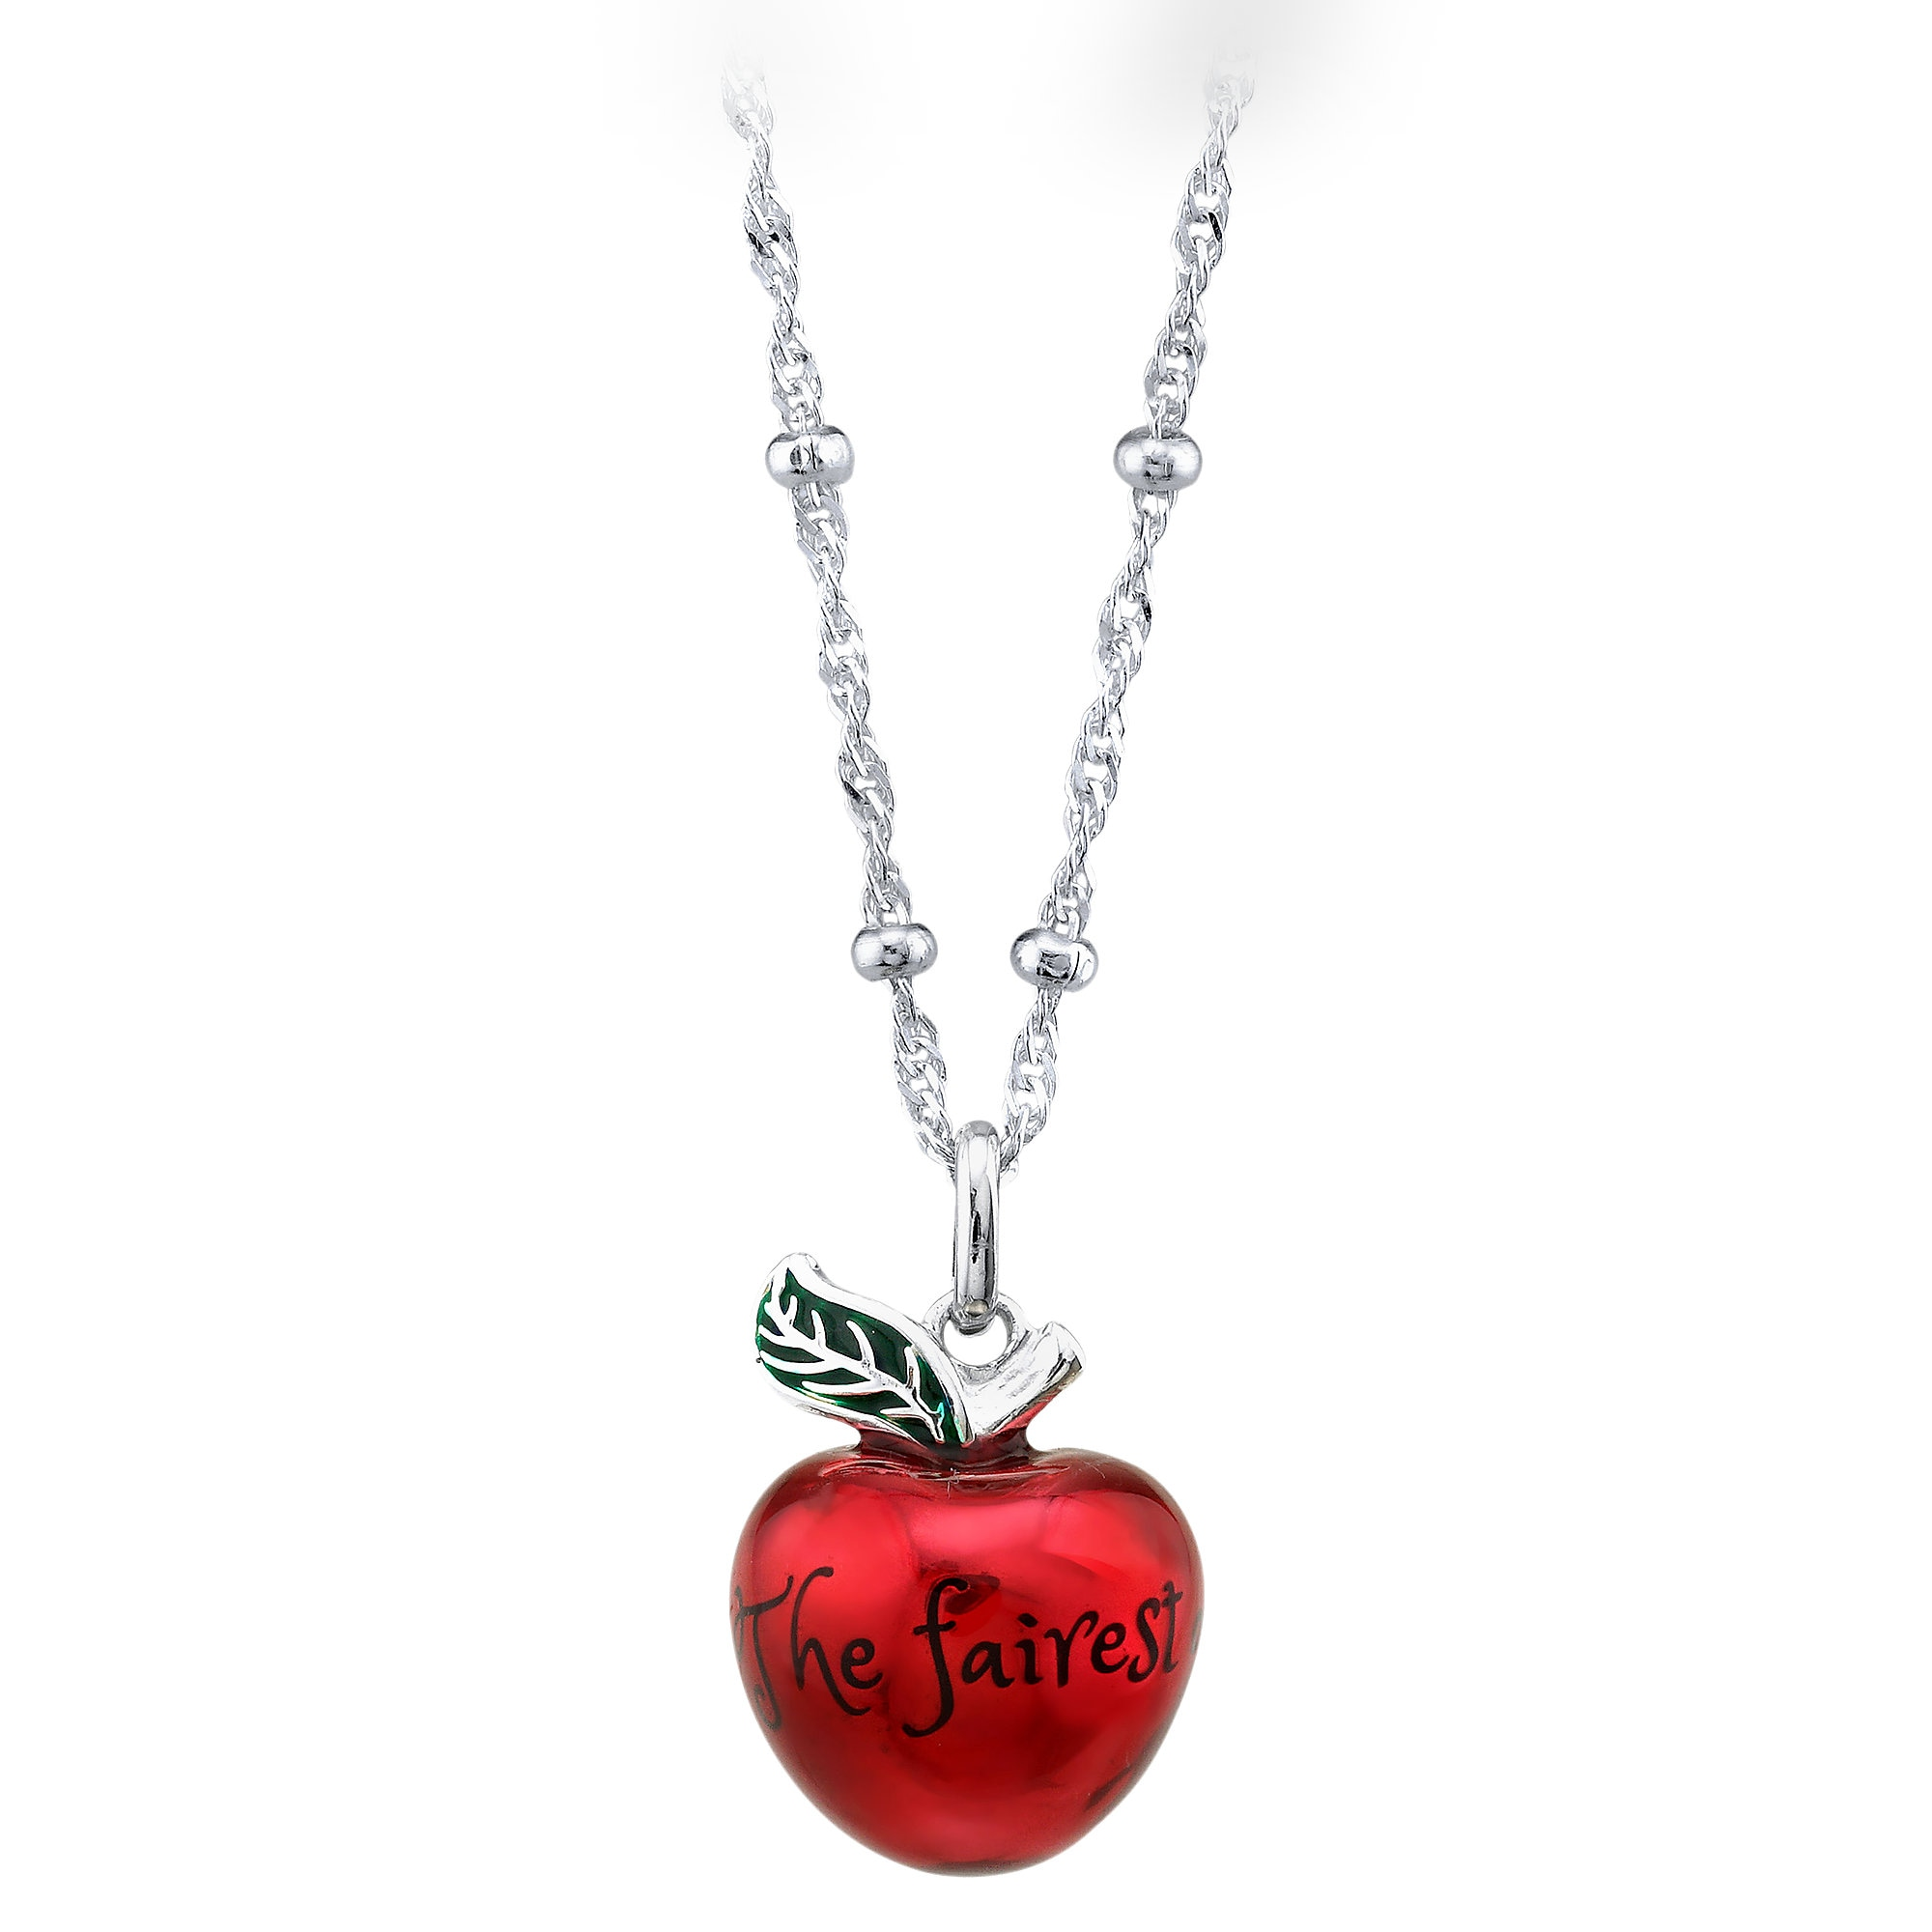 Fairest Apple Necklace by RockLove - Snow White and the Seven Dwarfs